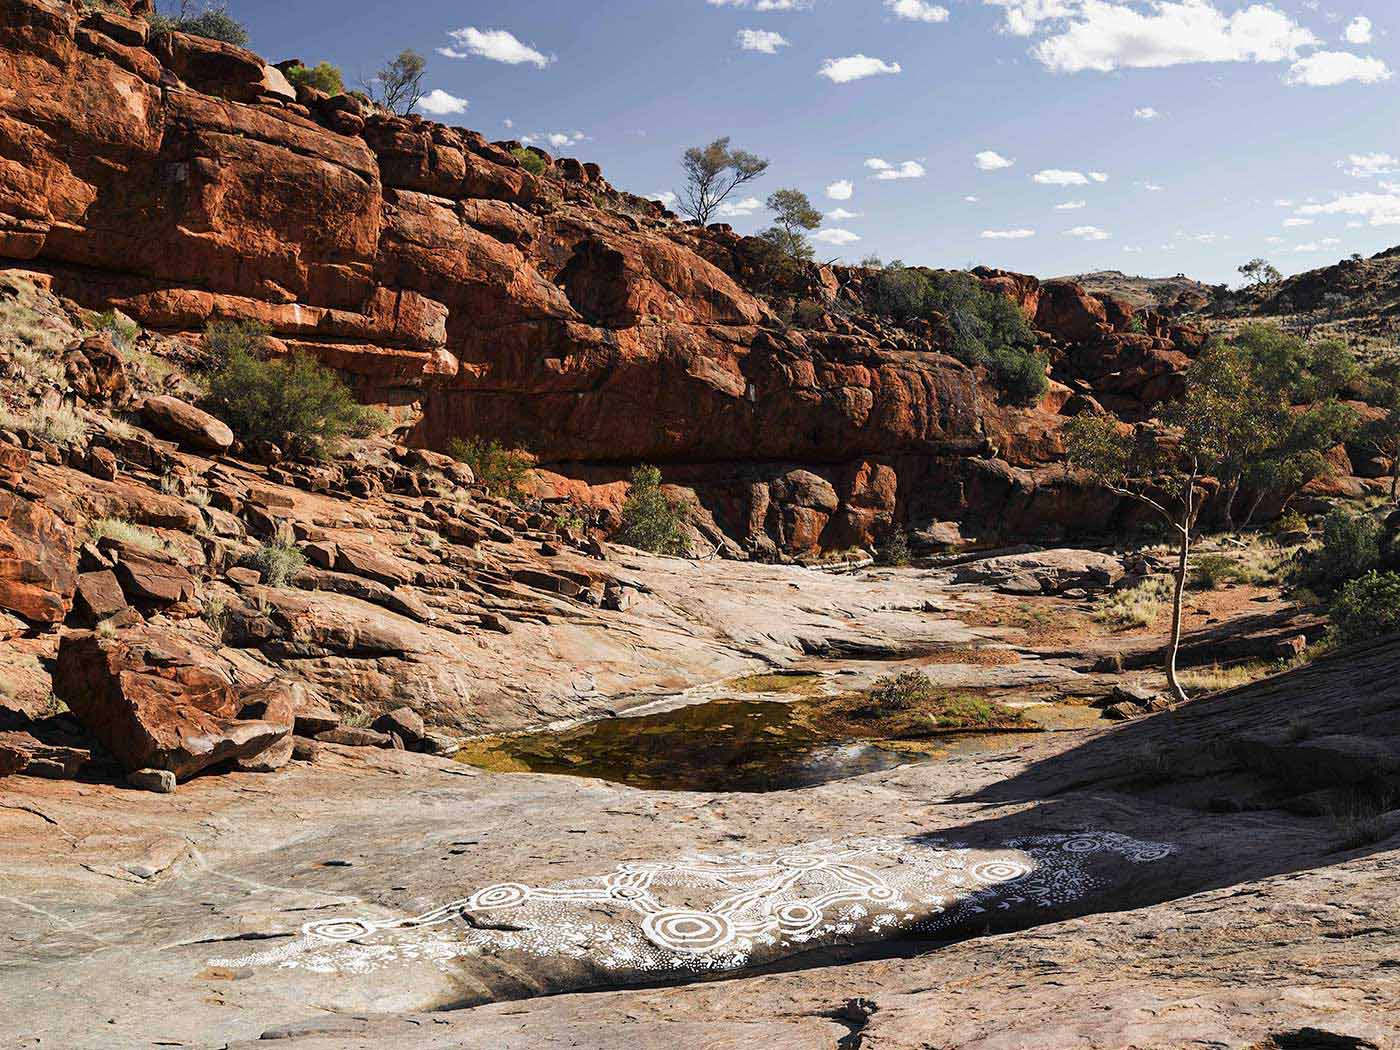 Colour photograph showing a rocky landscape. There is a small pool of water in the foreground with artwork in white designs painted on a smooth and flat rock surface nearby. - click to view larger image